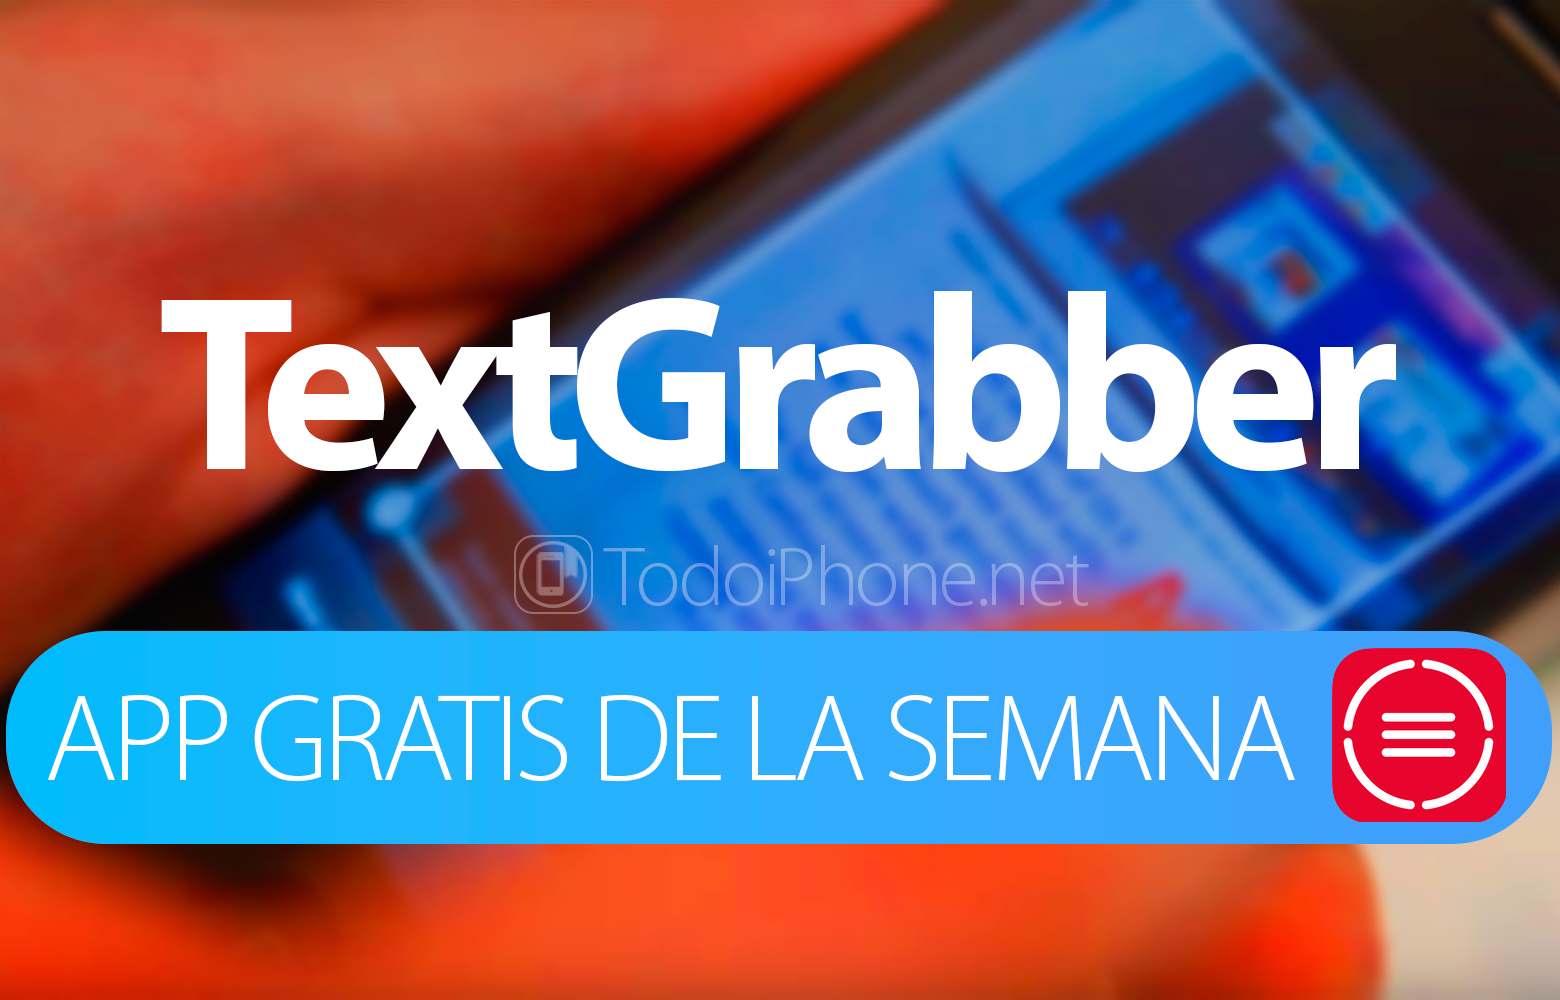 TextGrabber - App of the Week on iTunes 3